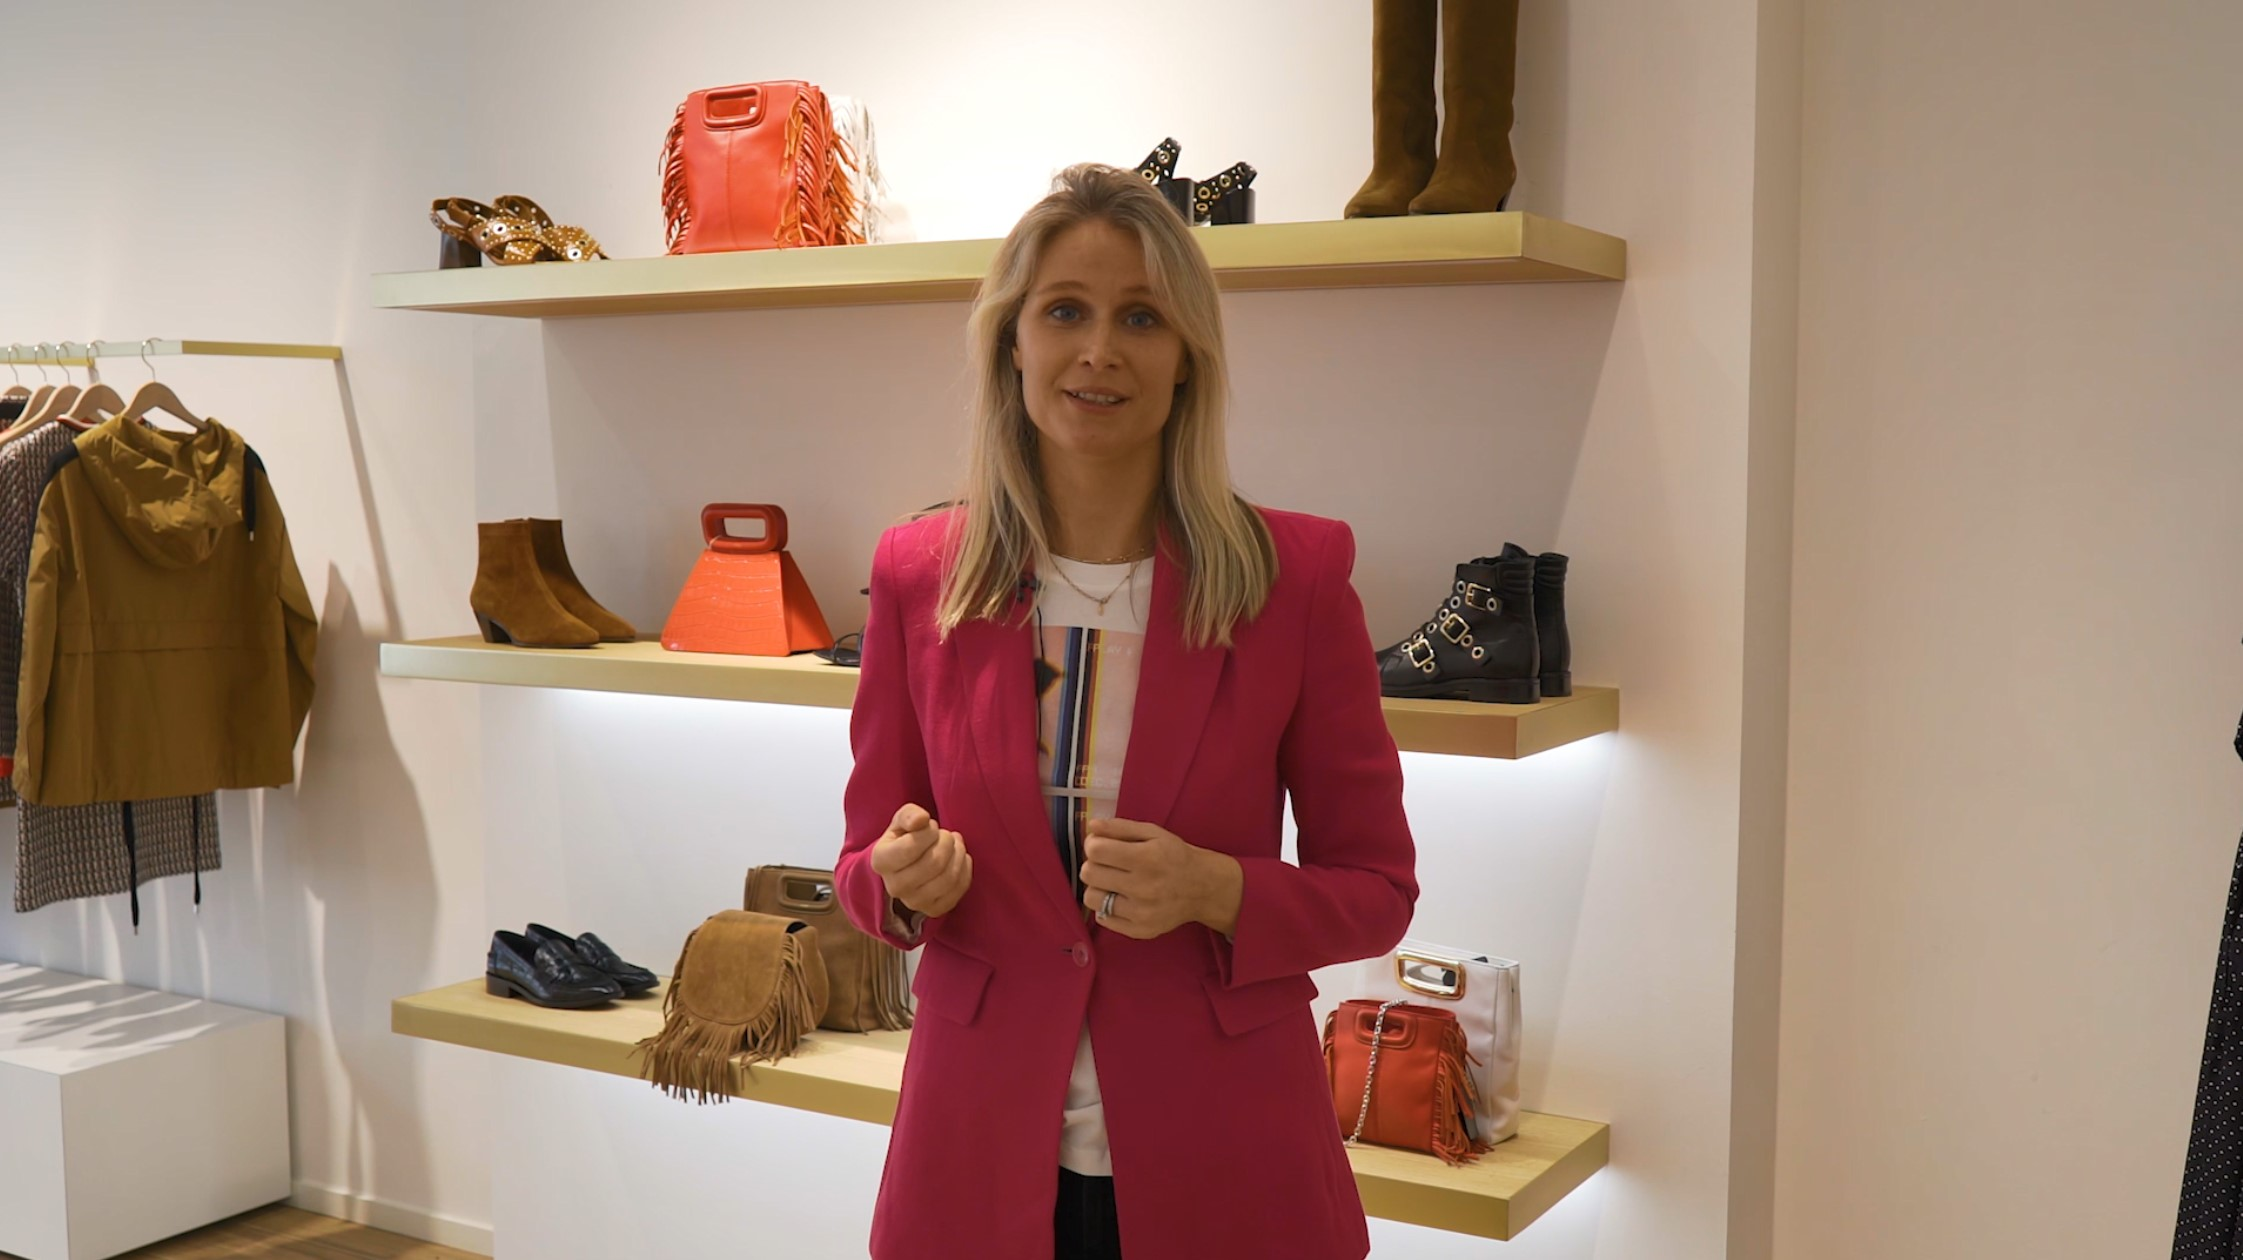 One-to-one virtual shopping with the Maje boutique at Kildare Village